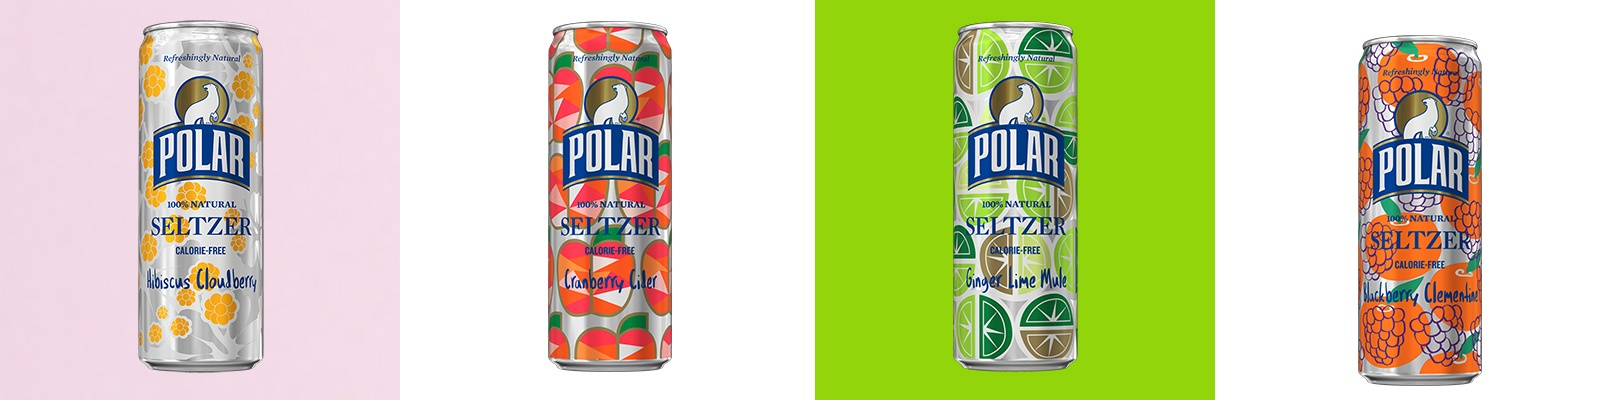 Polar Seltzer winter 2018 flavors slim cans